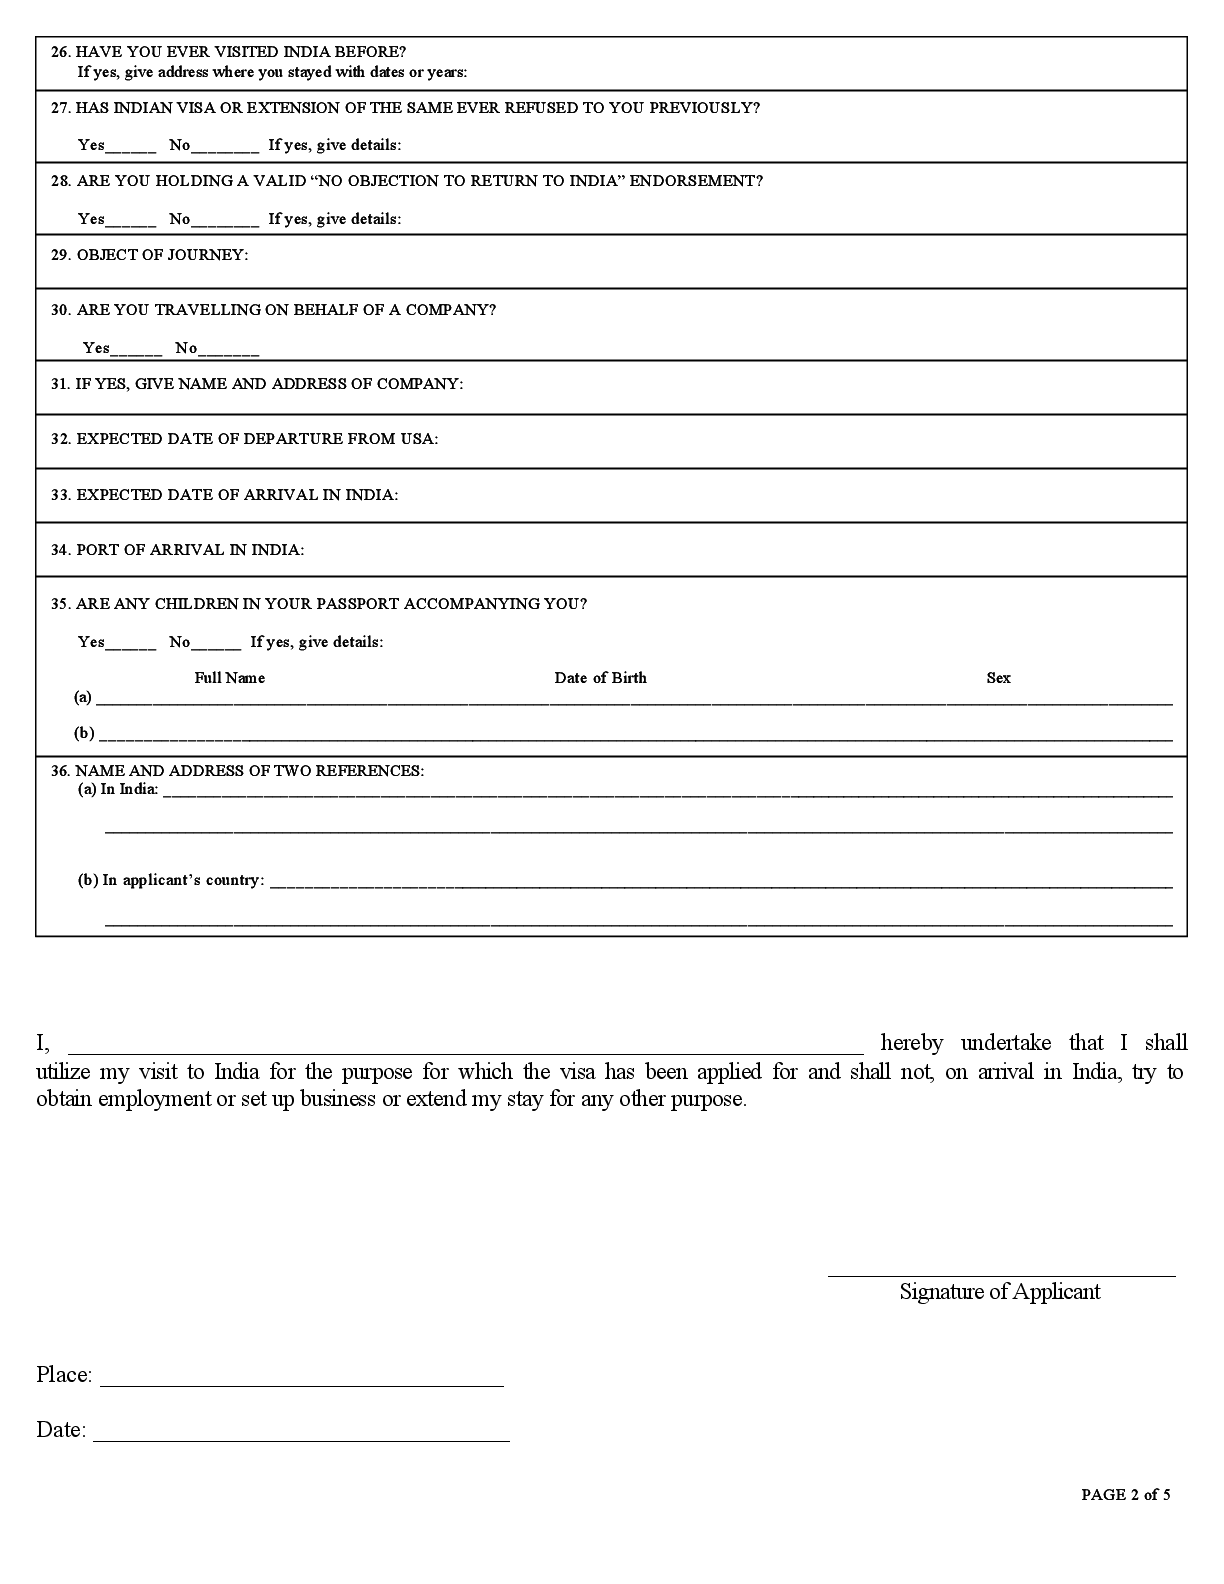 Consulate General Of India Houston Visa Application Form